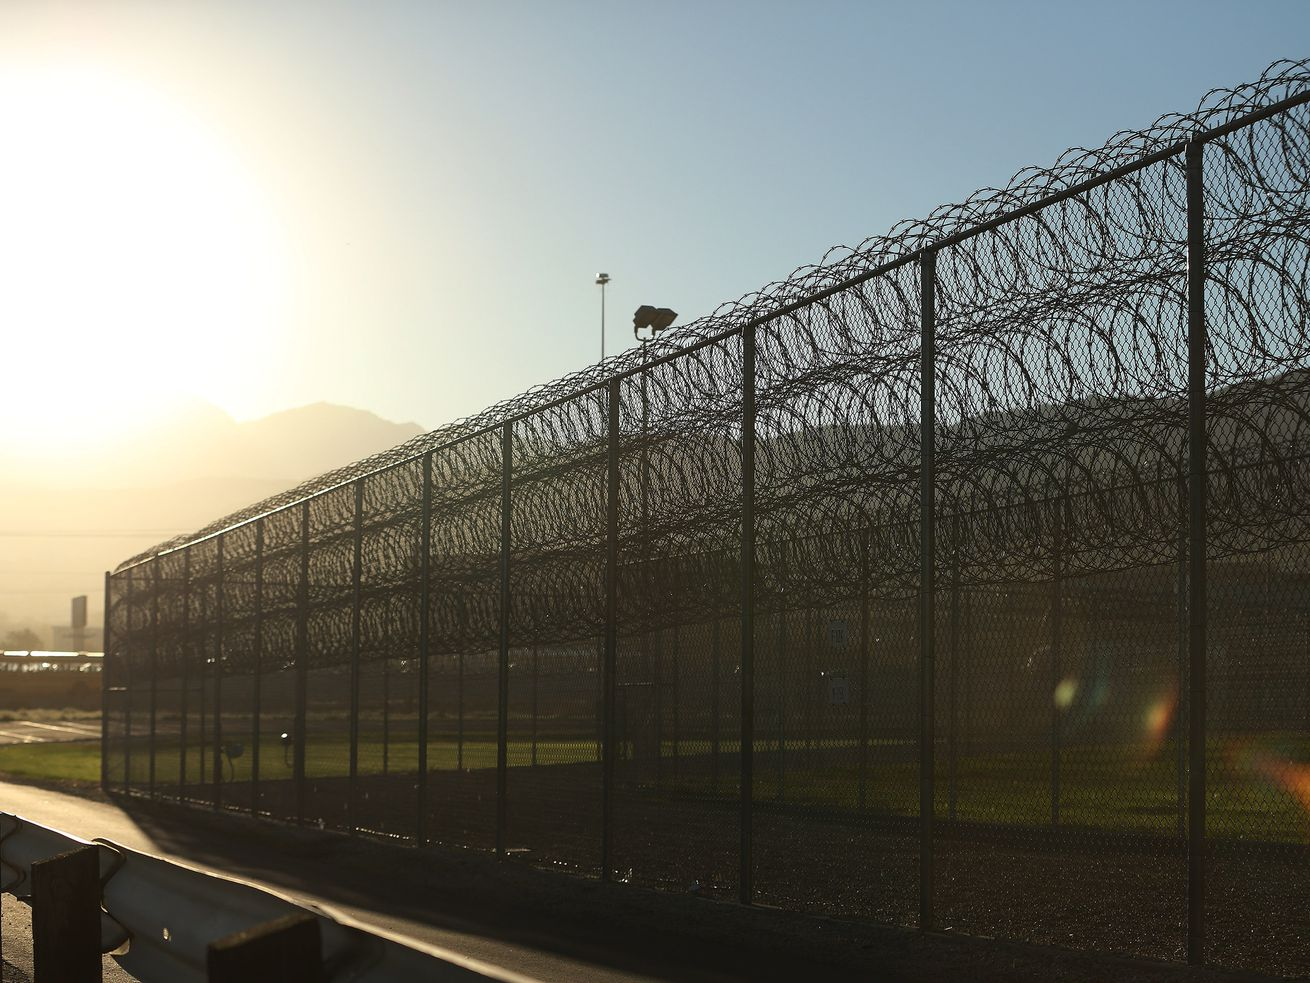 The sun rises over the Utah State Prison in Draper on Sept. 19, 2018.